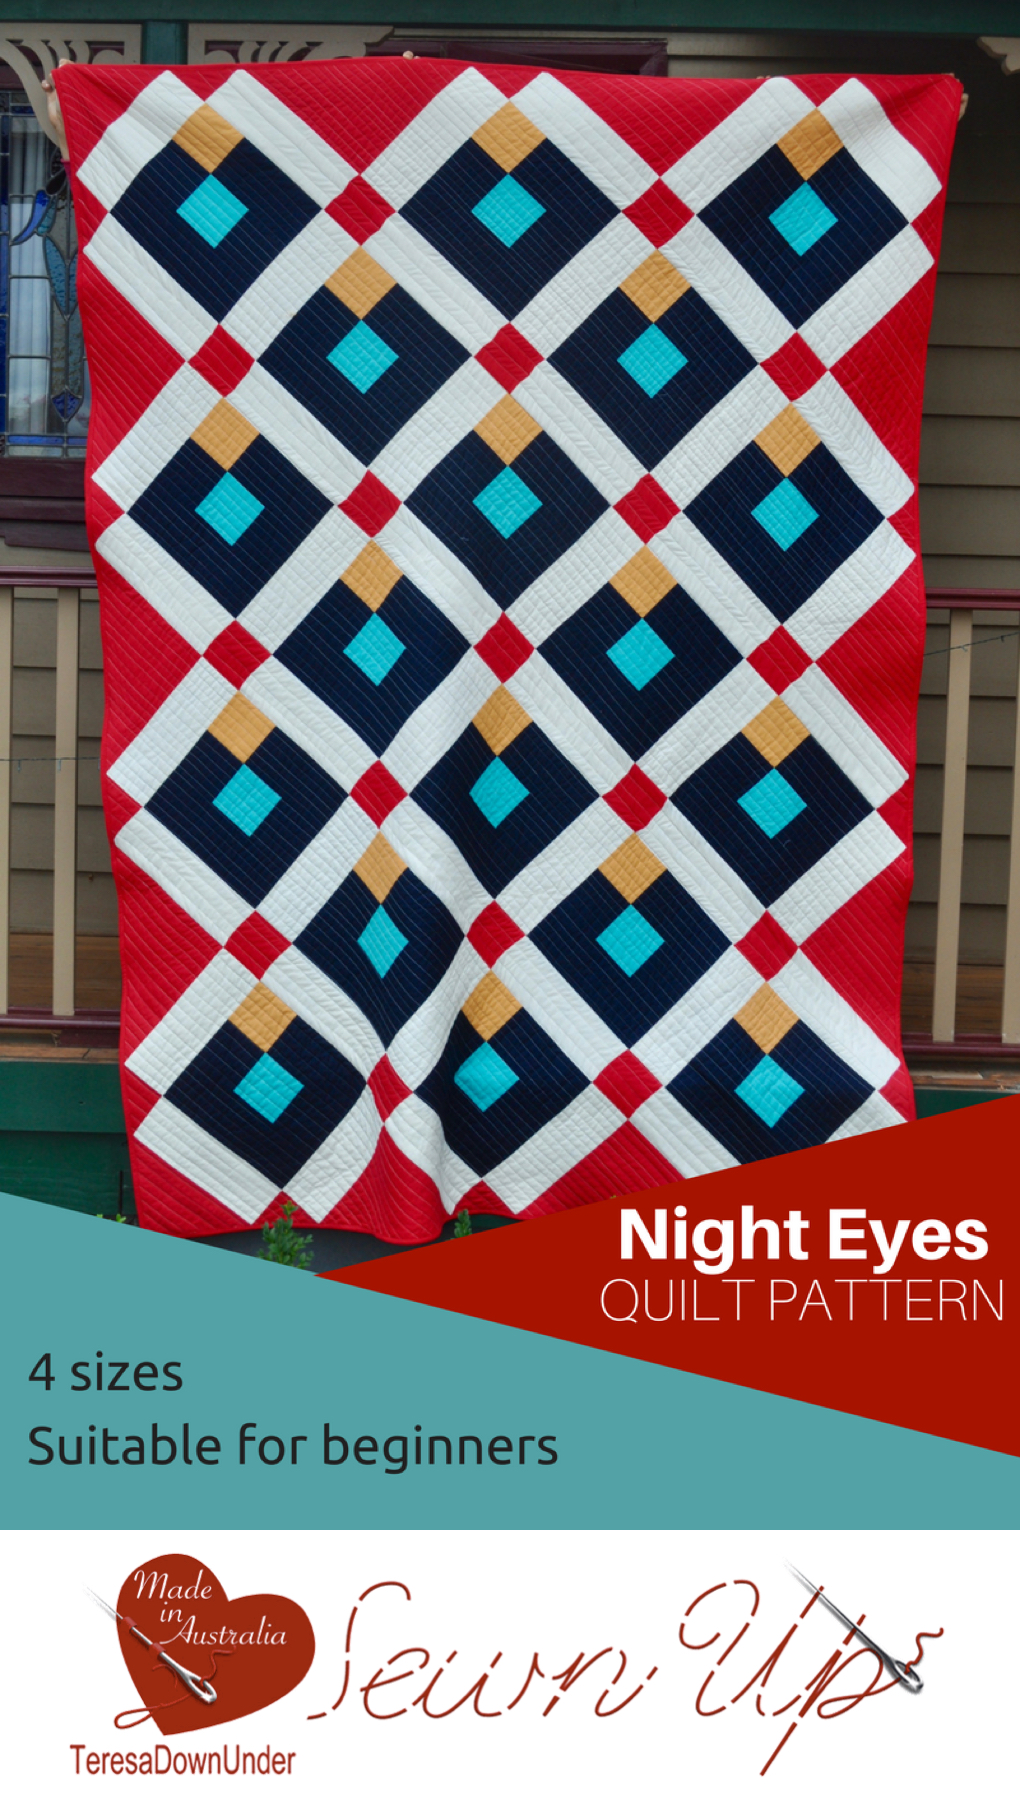 Night eyes quilt pattern for beginners